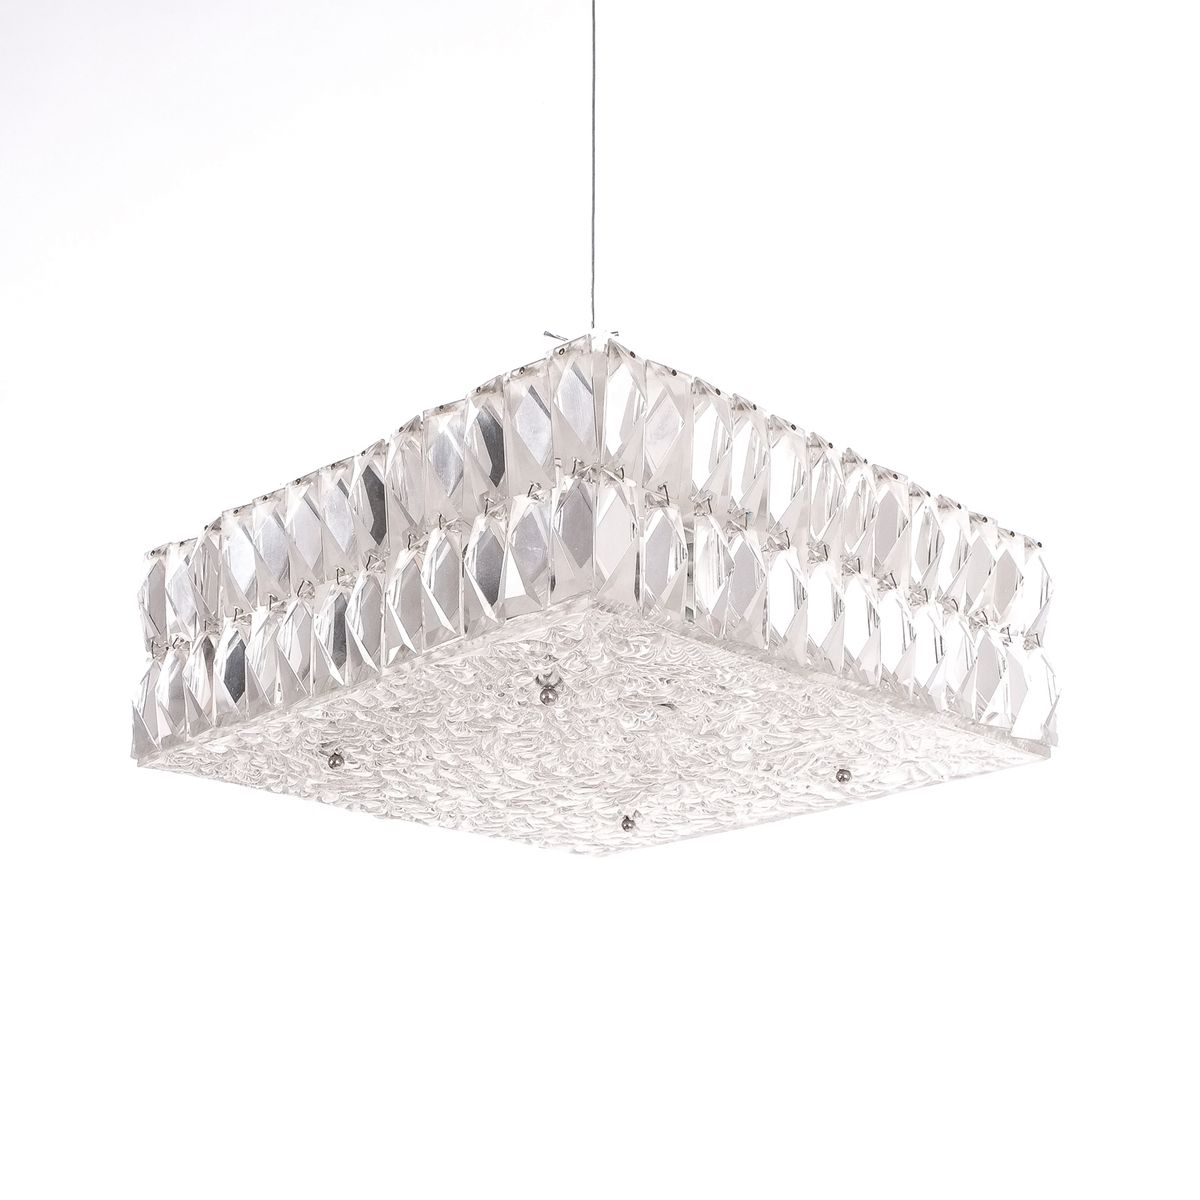 Mid century textured glass square flush mount ceiling lamp by jt mid century textured glass square flush mount ceiling lamp by jt kalmar aloadofball Images